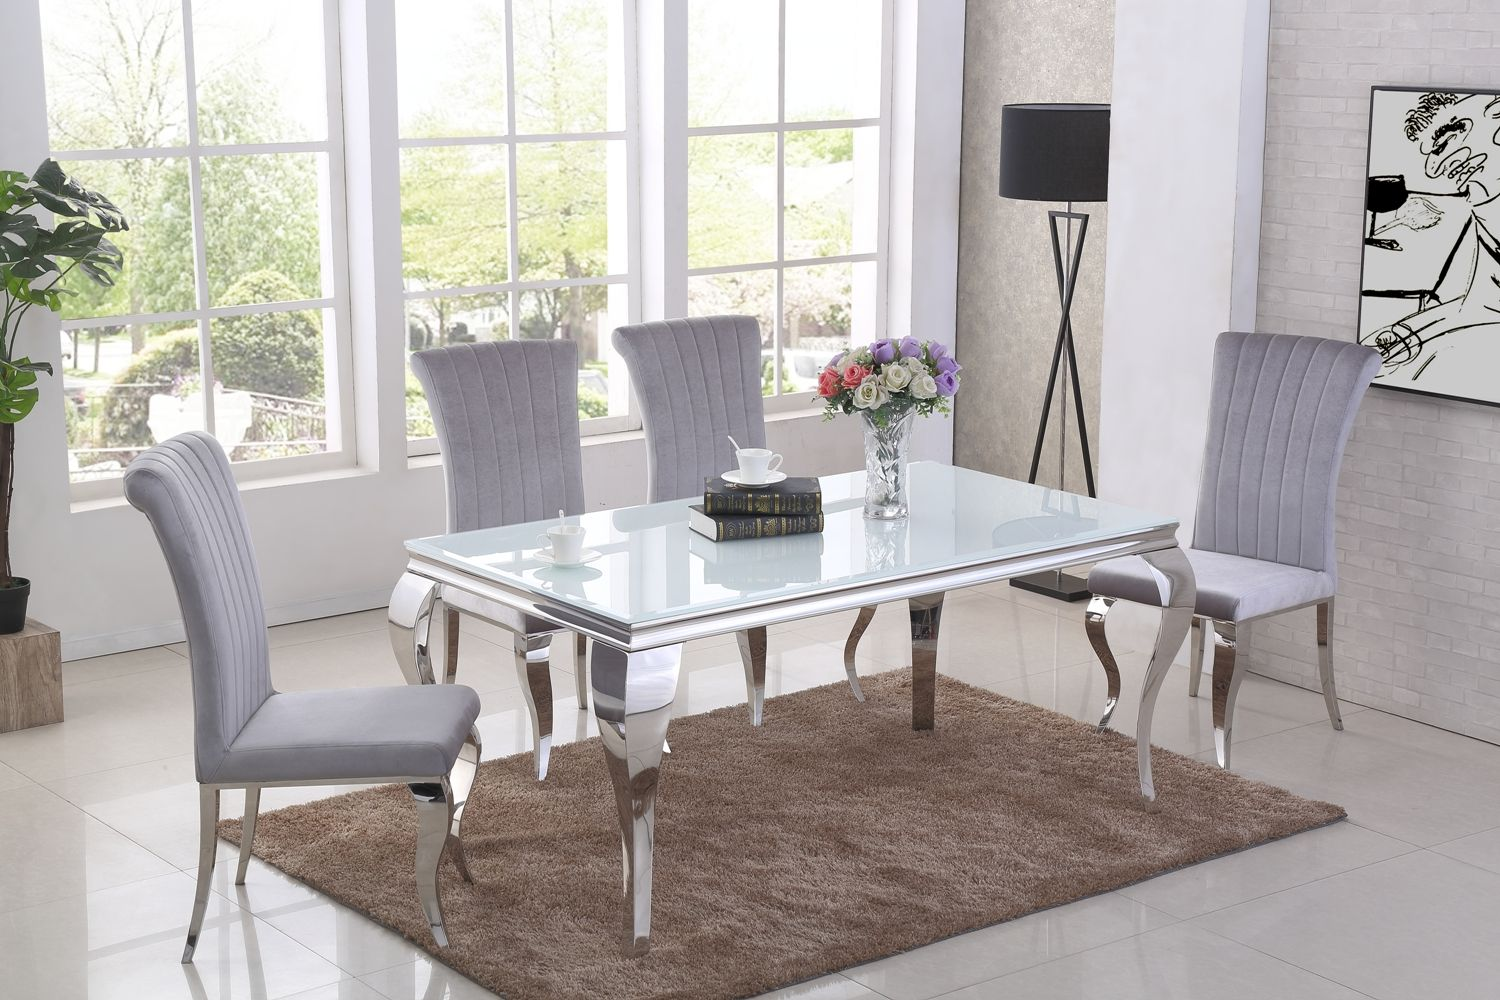 White Dining Room Chair Ga Liyana White Dining Table 4 6 Grey Chairs